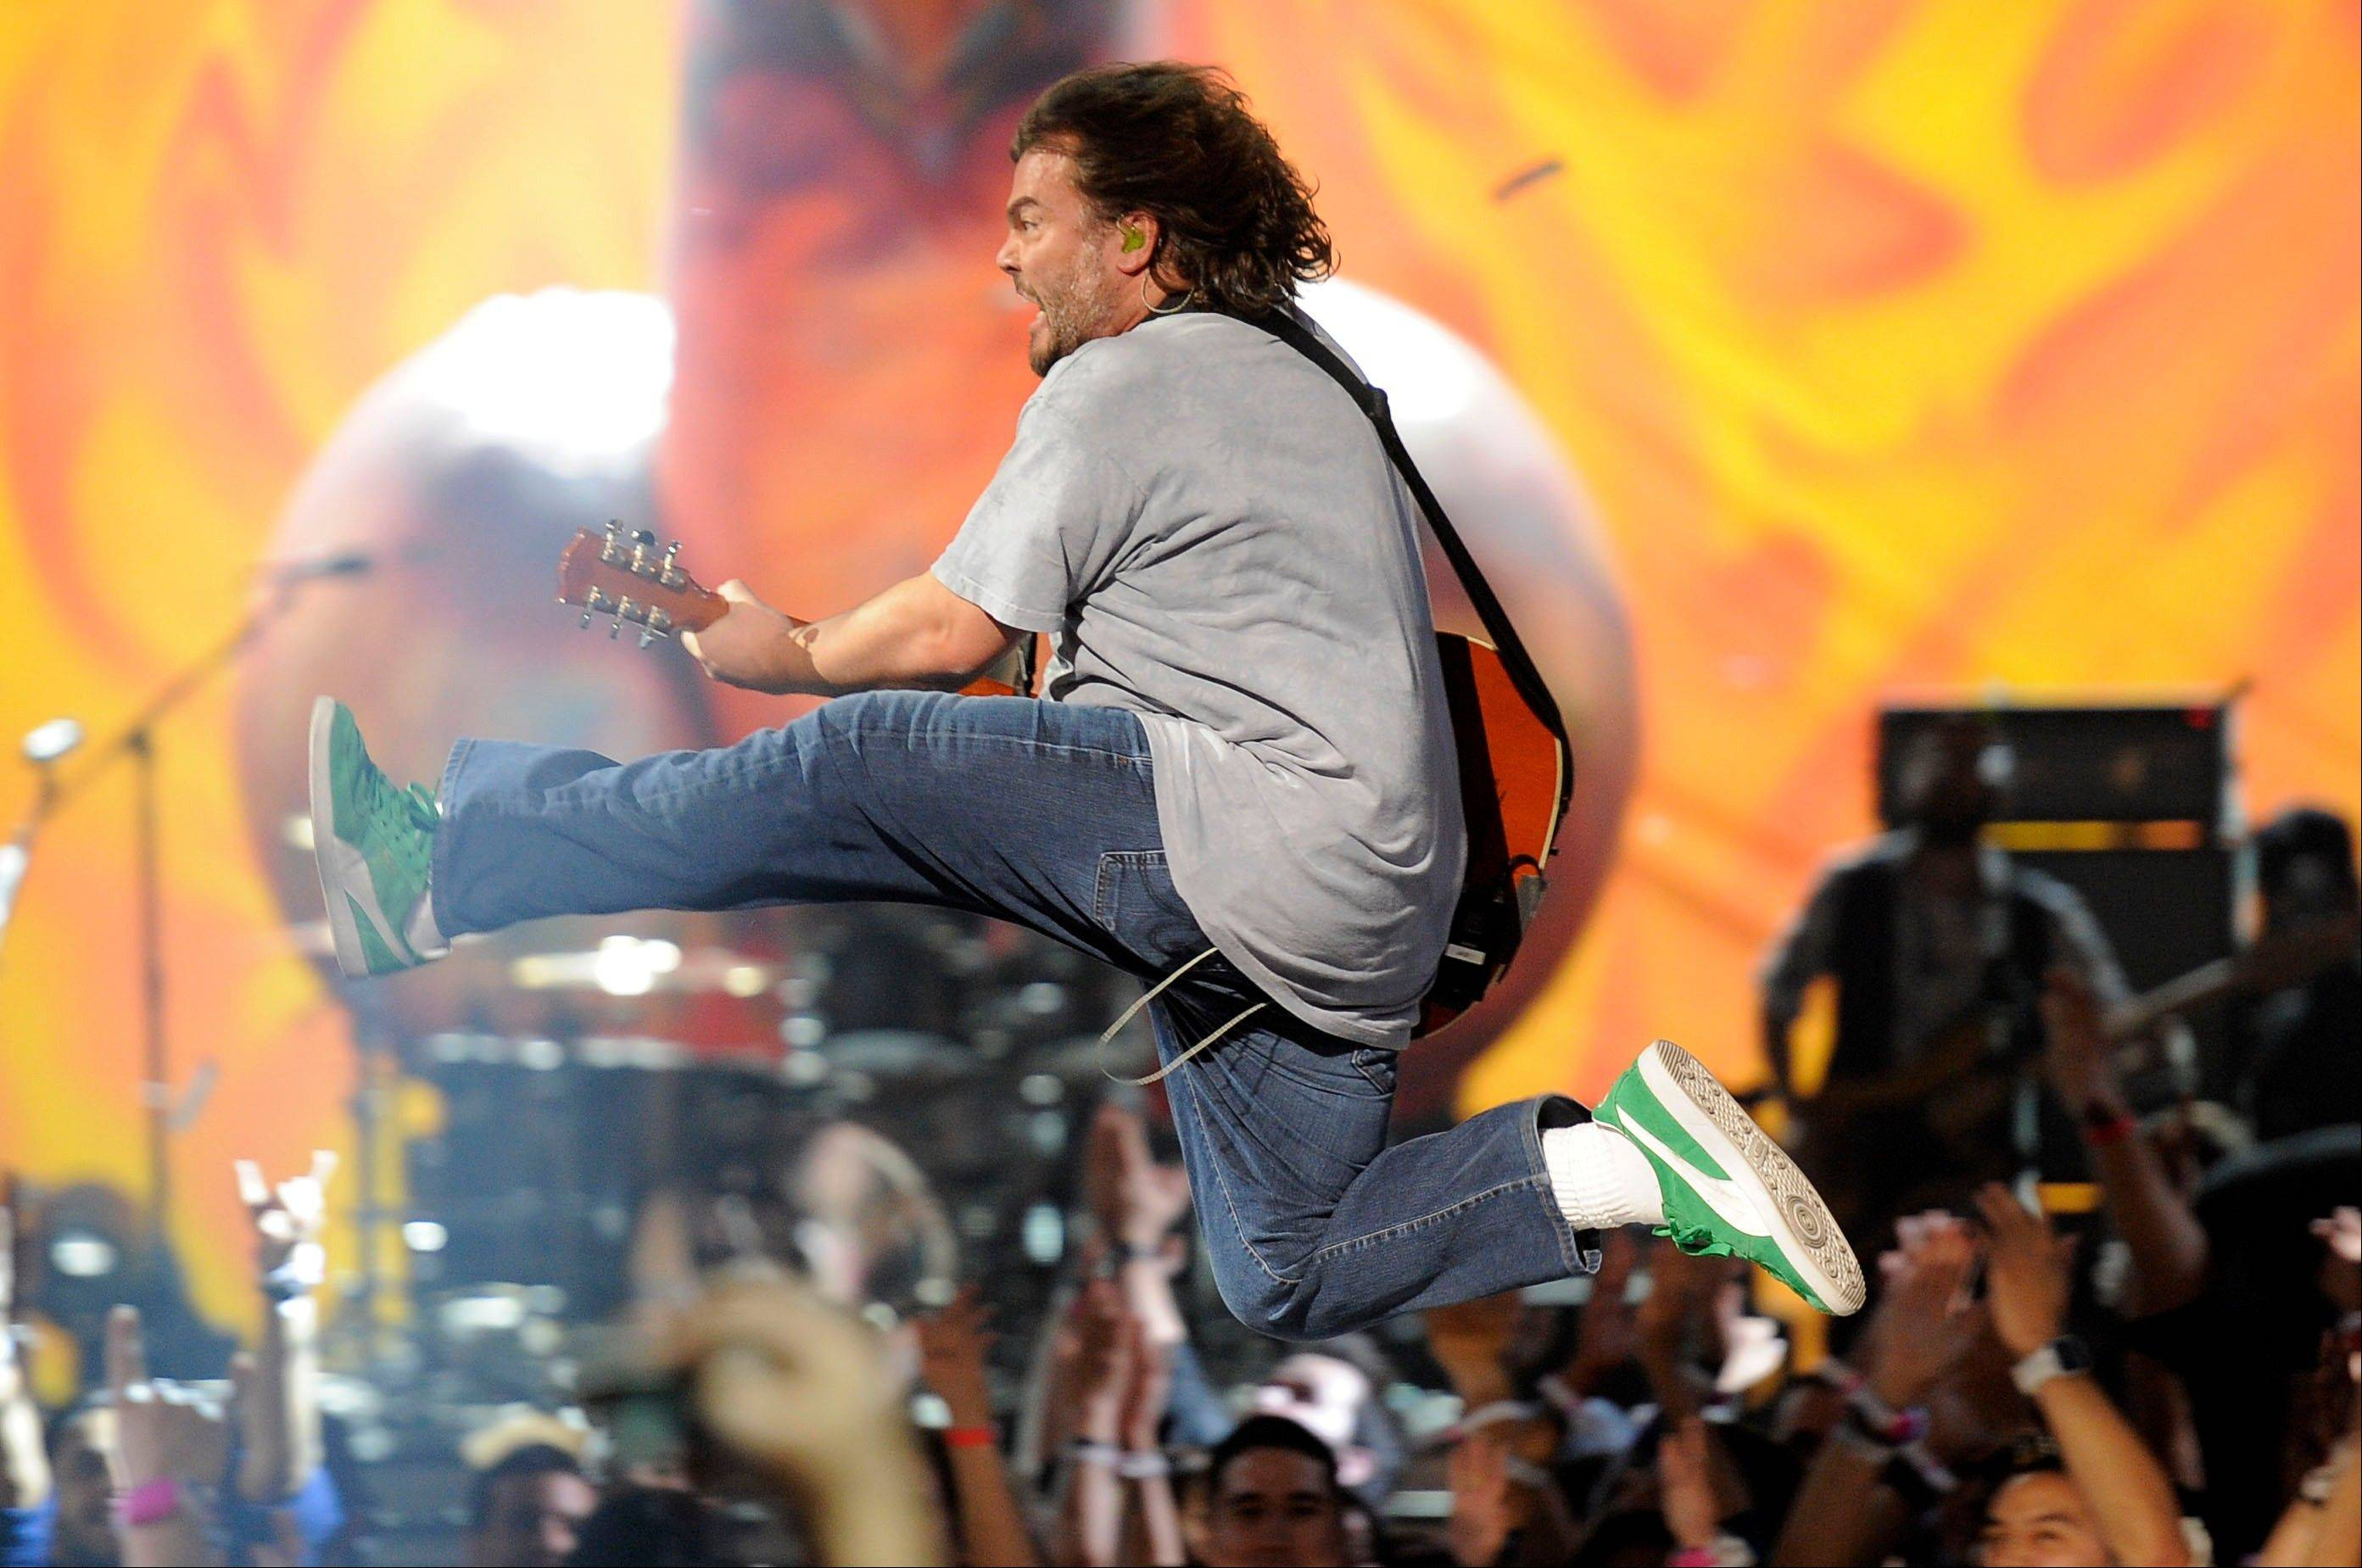 Tenacious D's Jack Black performs Friday at Spike's 10th Annual Video Game Awards.